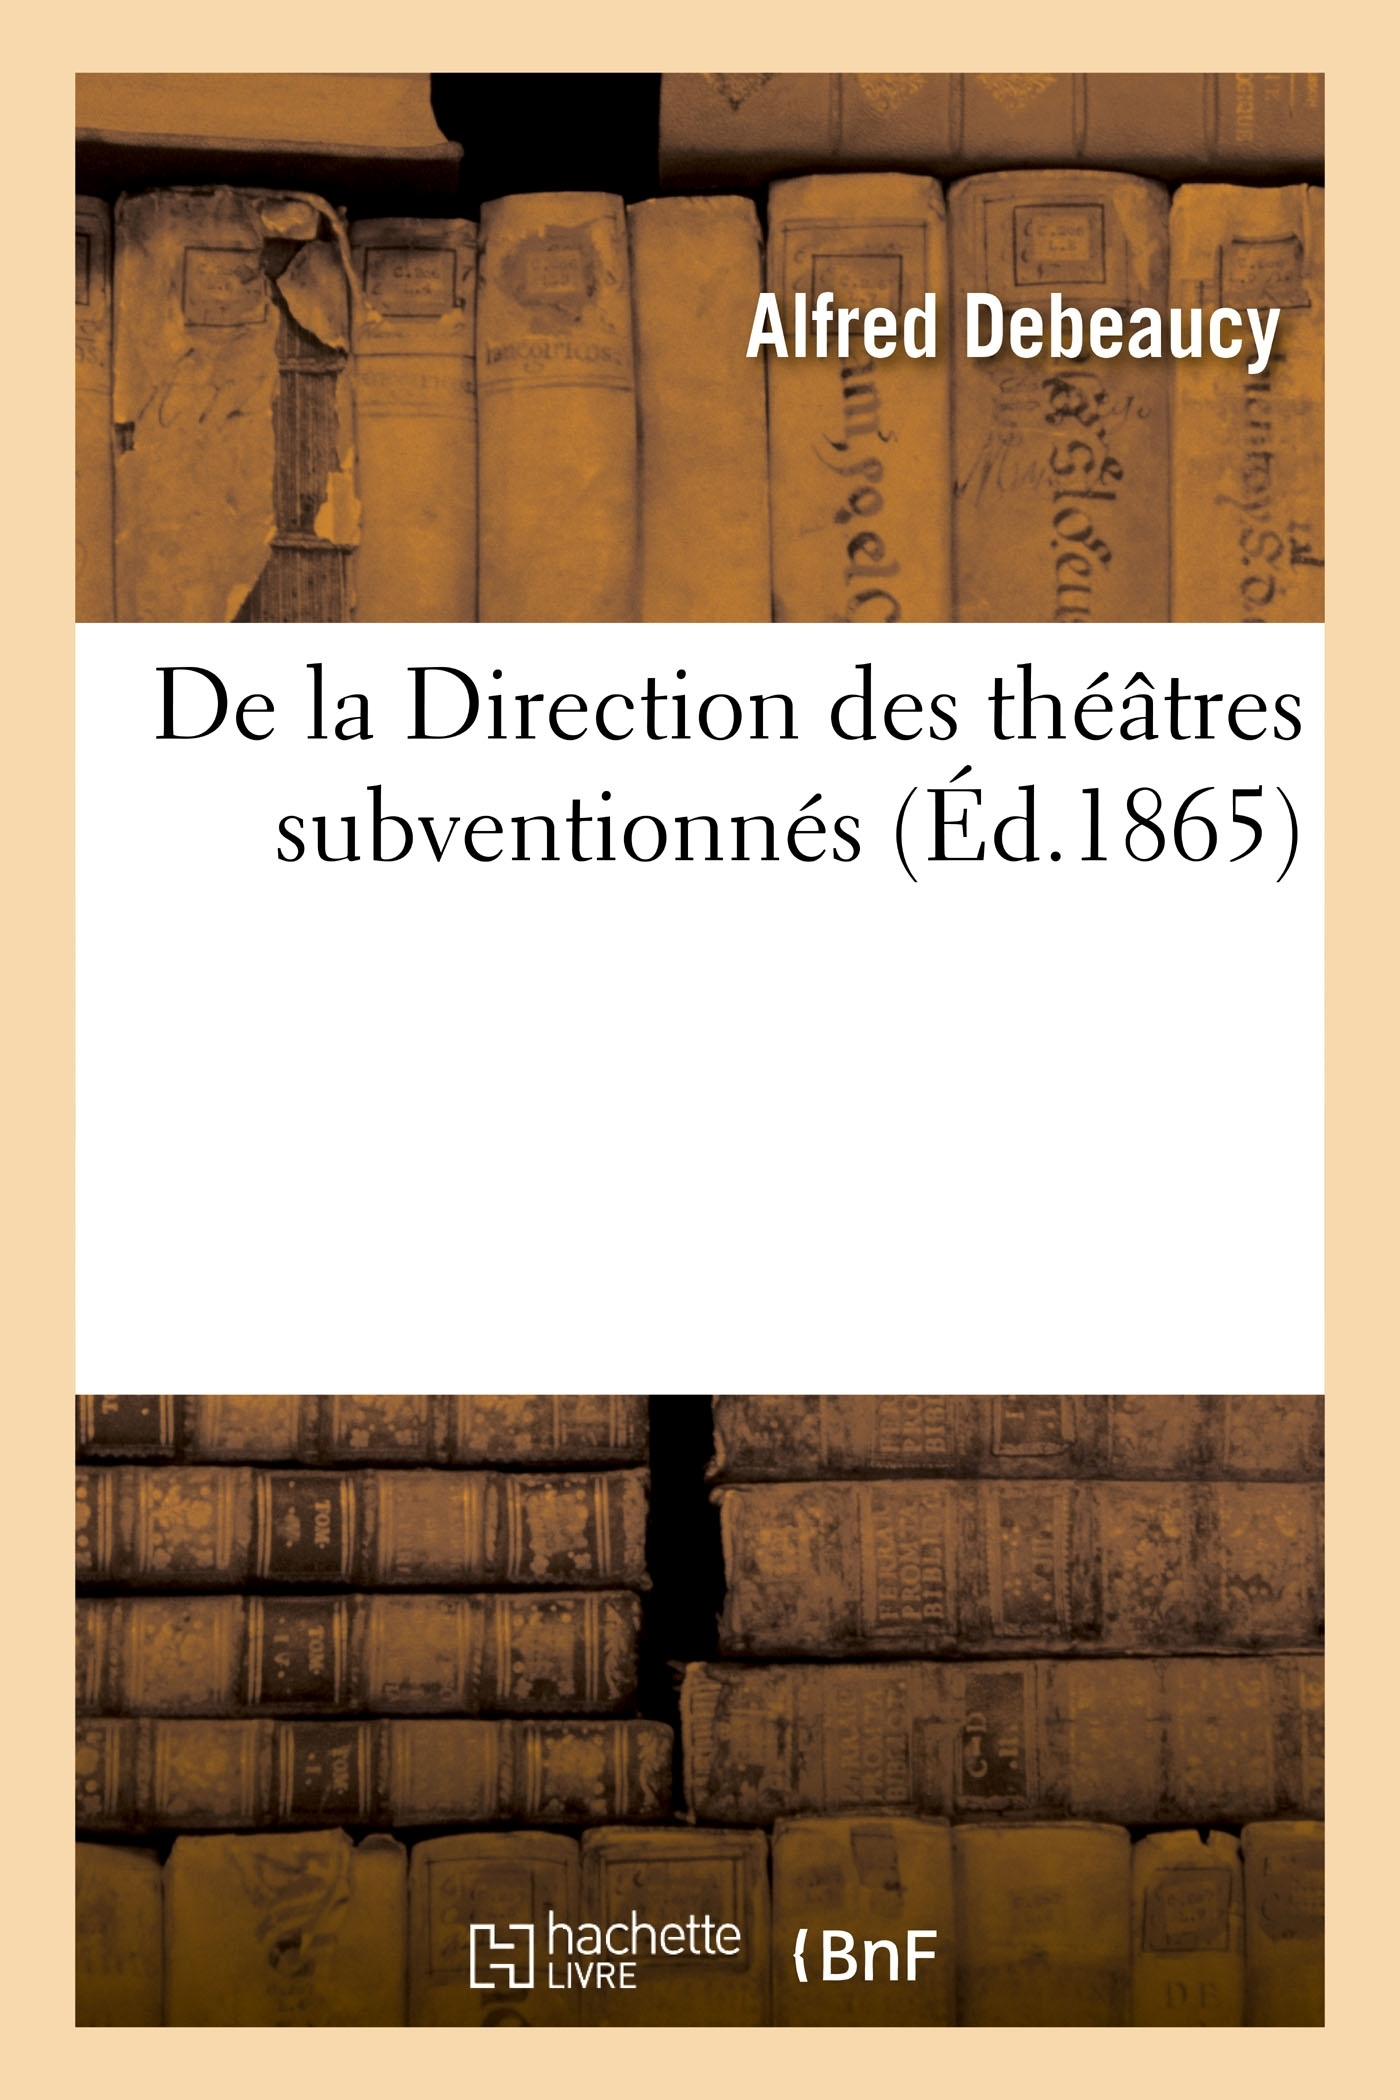 DE LA DIRECTION DES THEATRES SUBVENTIONNES